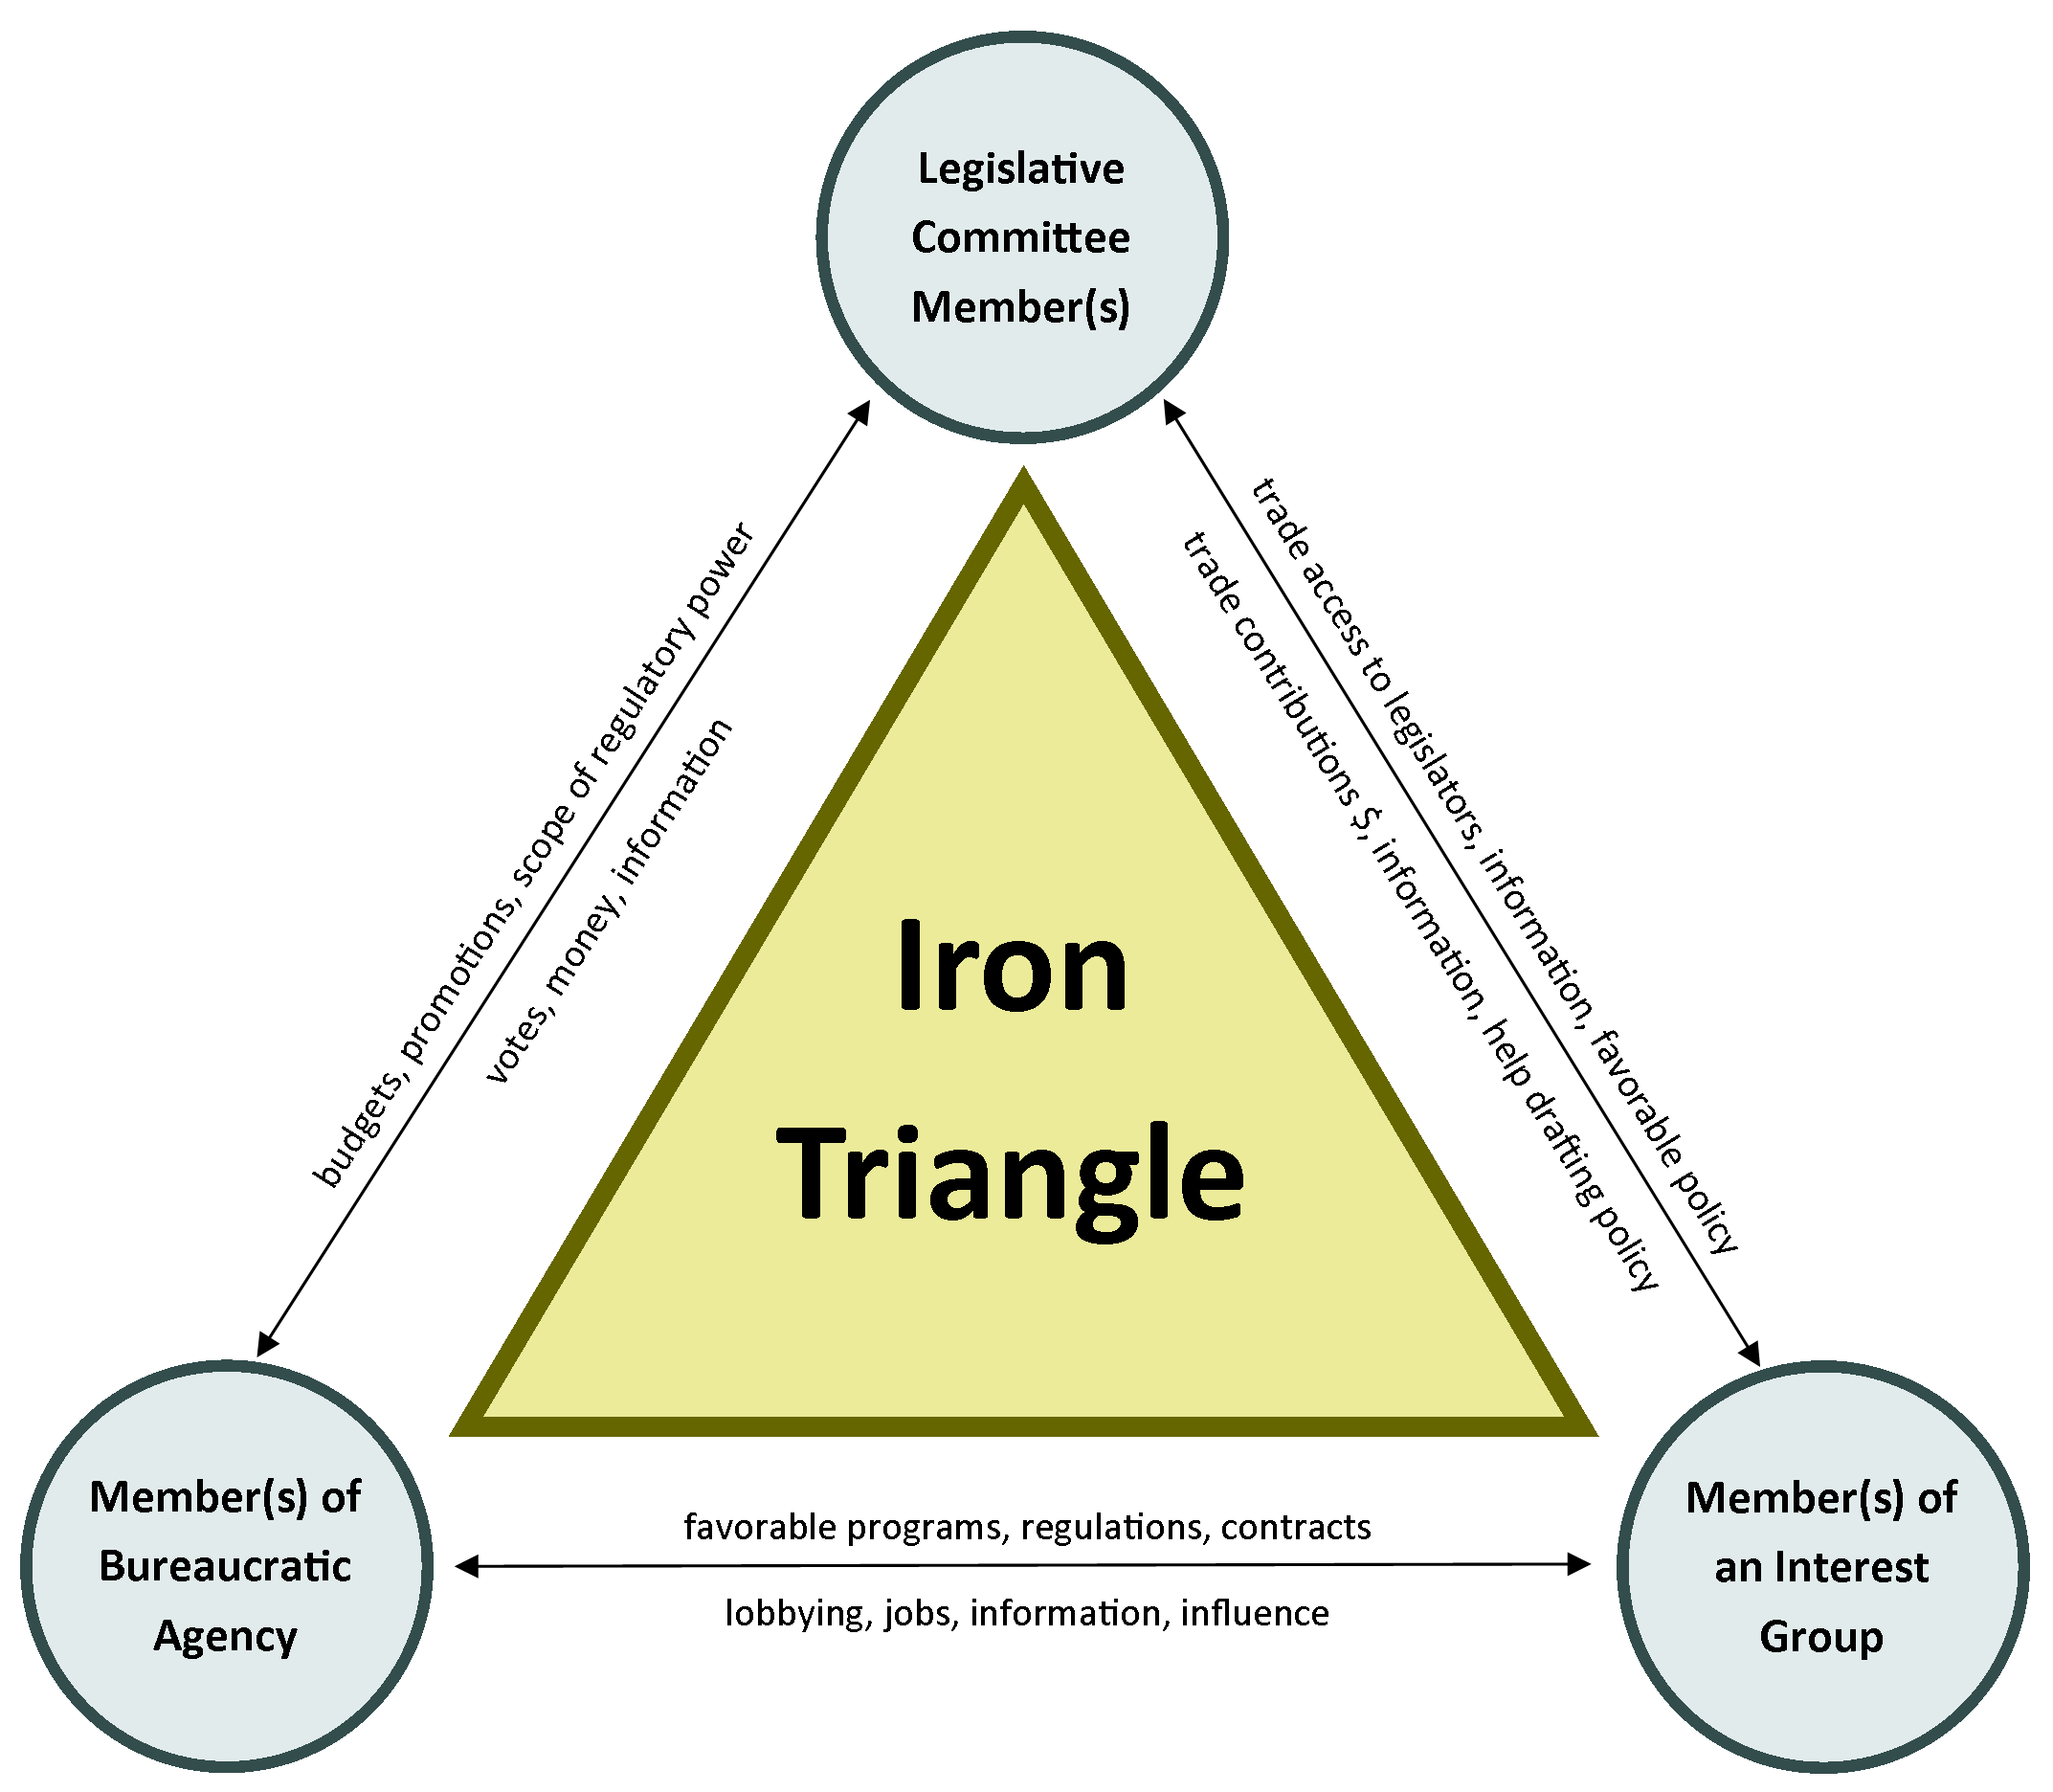 Chart illustrating the iron triangle including legislative committee members at one corner, members of bureaucratic agencies in the second corner and members of interest groups in the third corner.